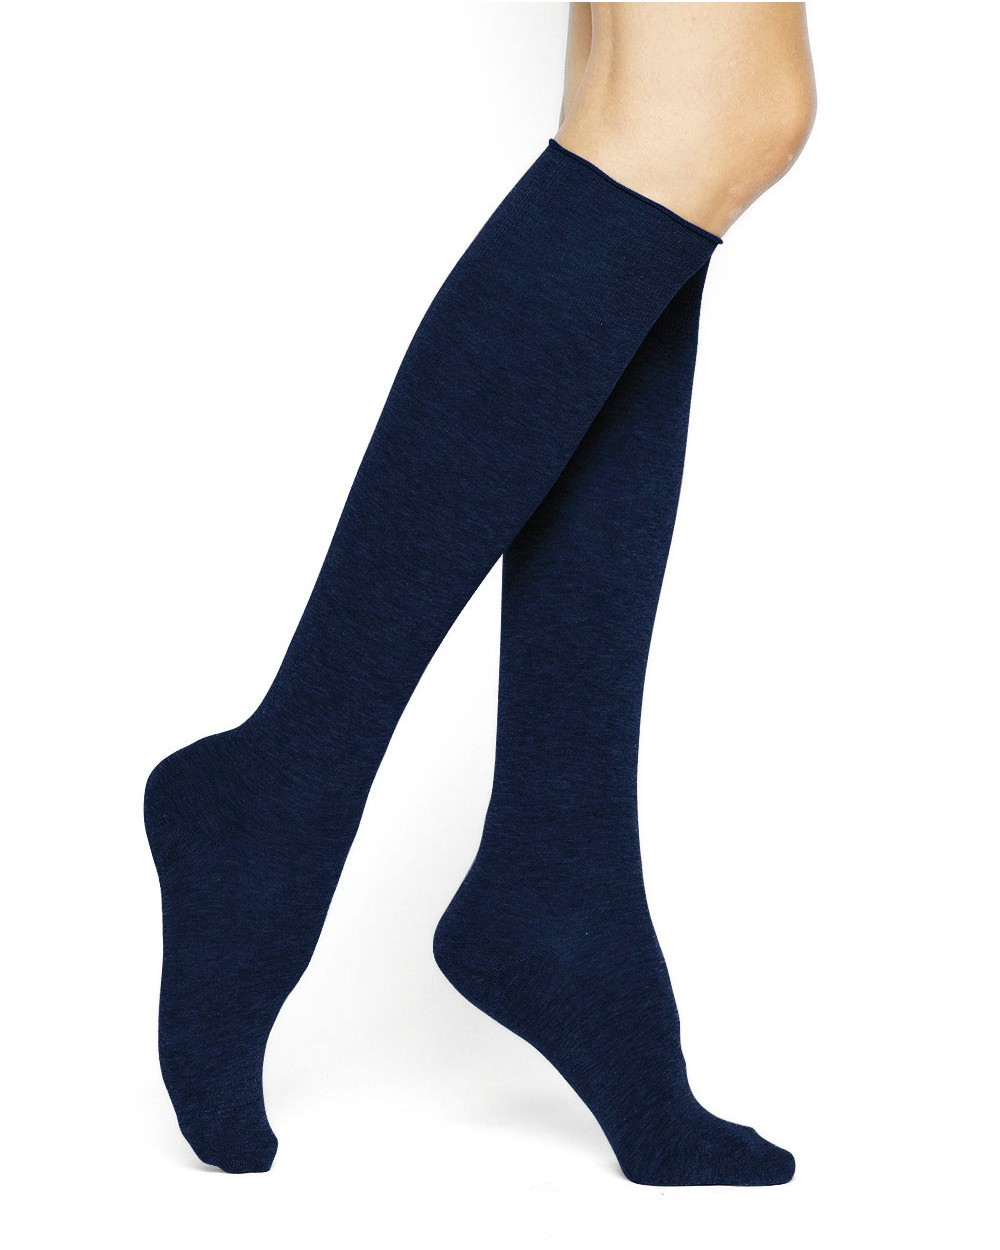 Plain pure cotton knee-high socks